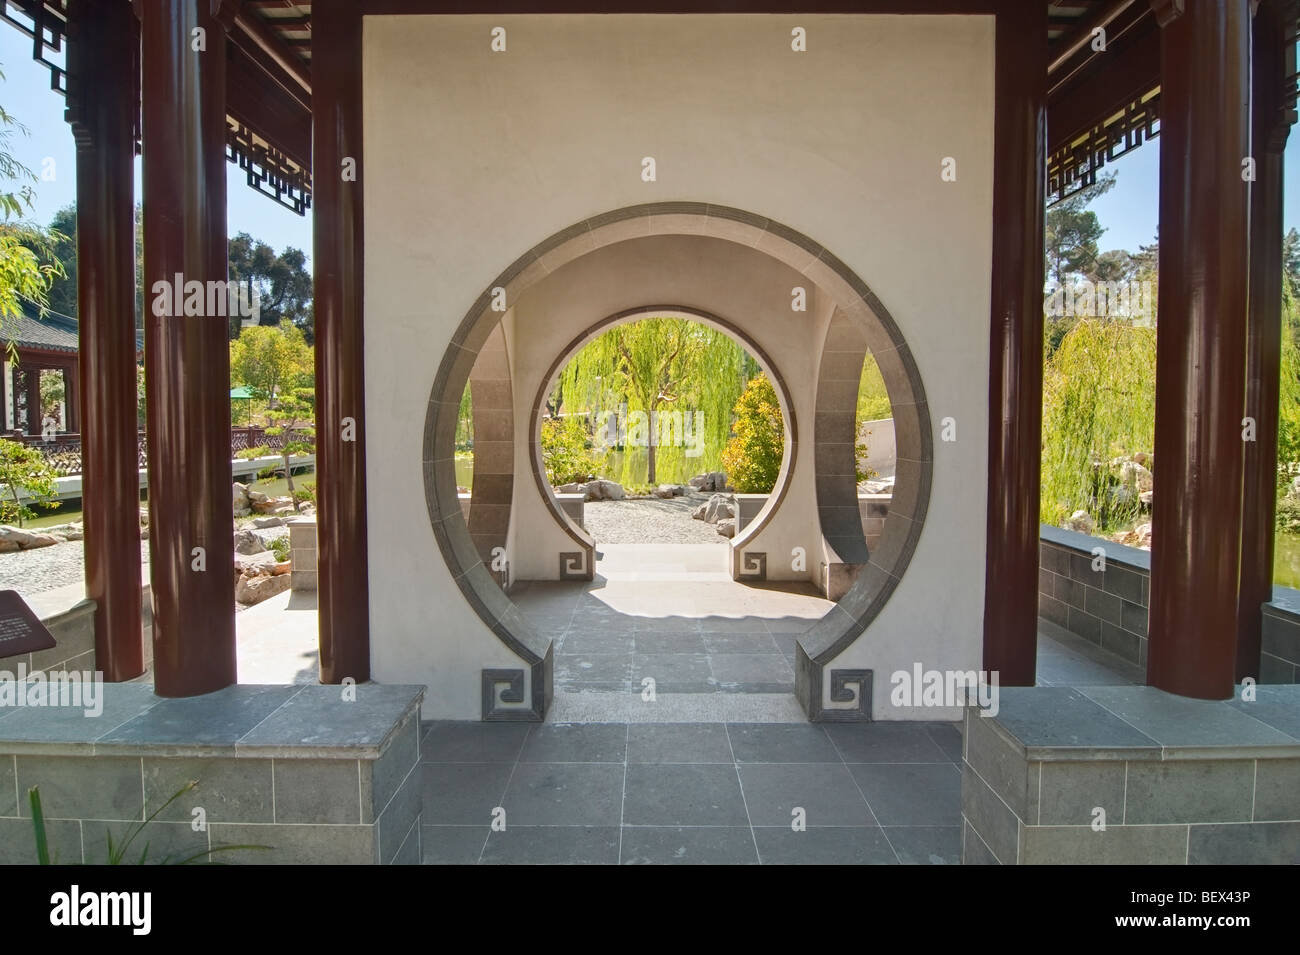 Terrace of the Jade Mirror at the Chinese Garden in the Huntington Library. - Stock Image